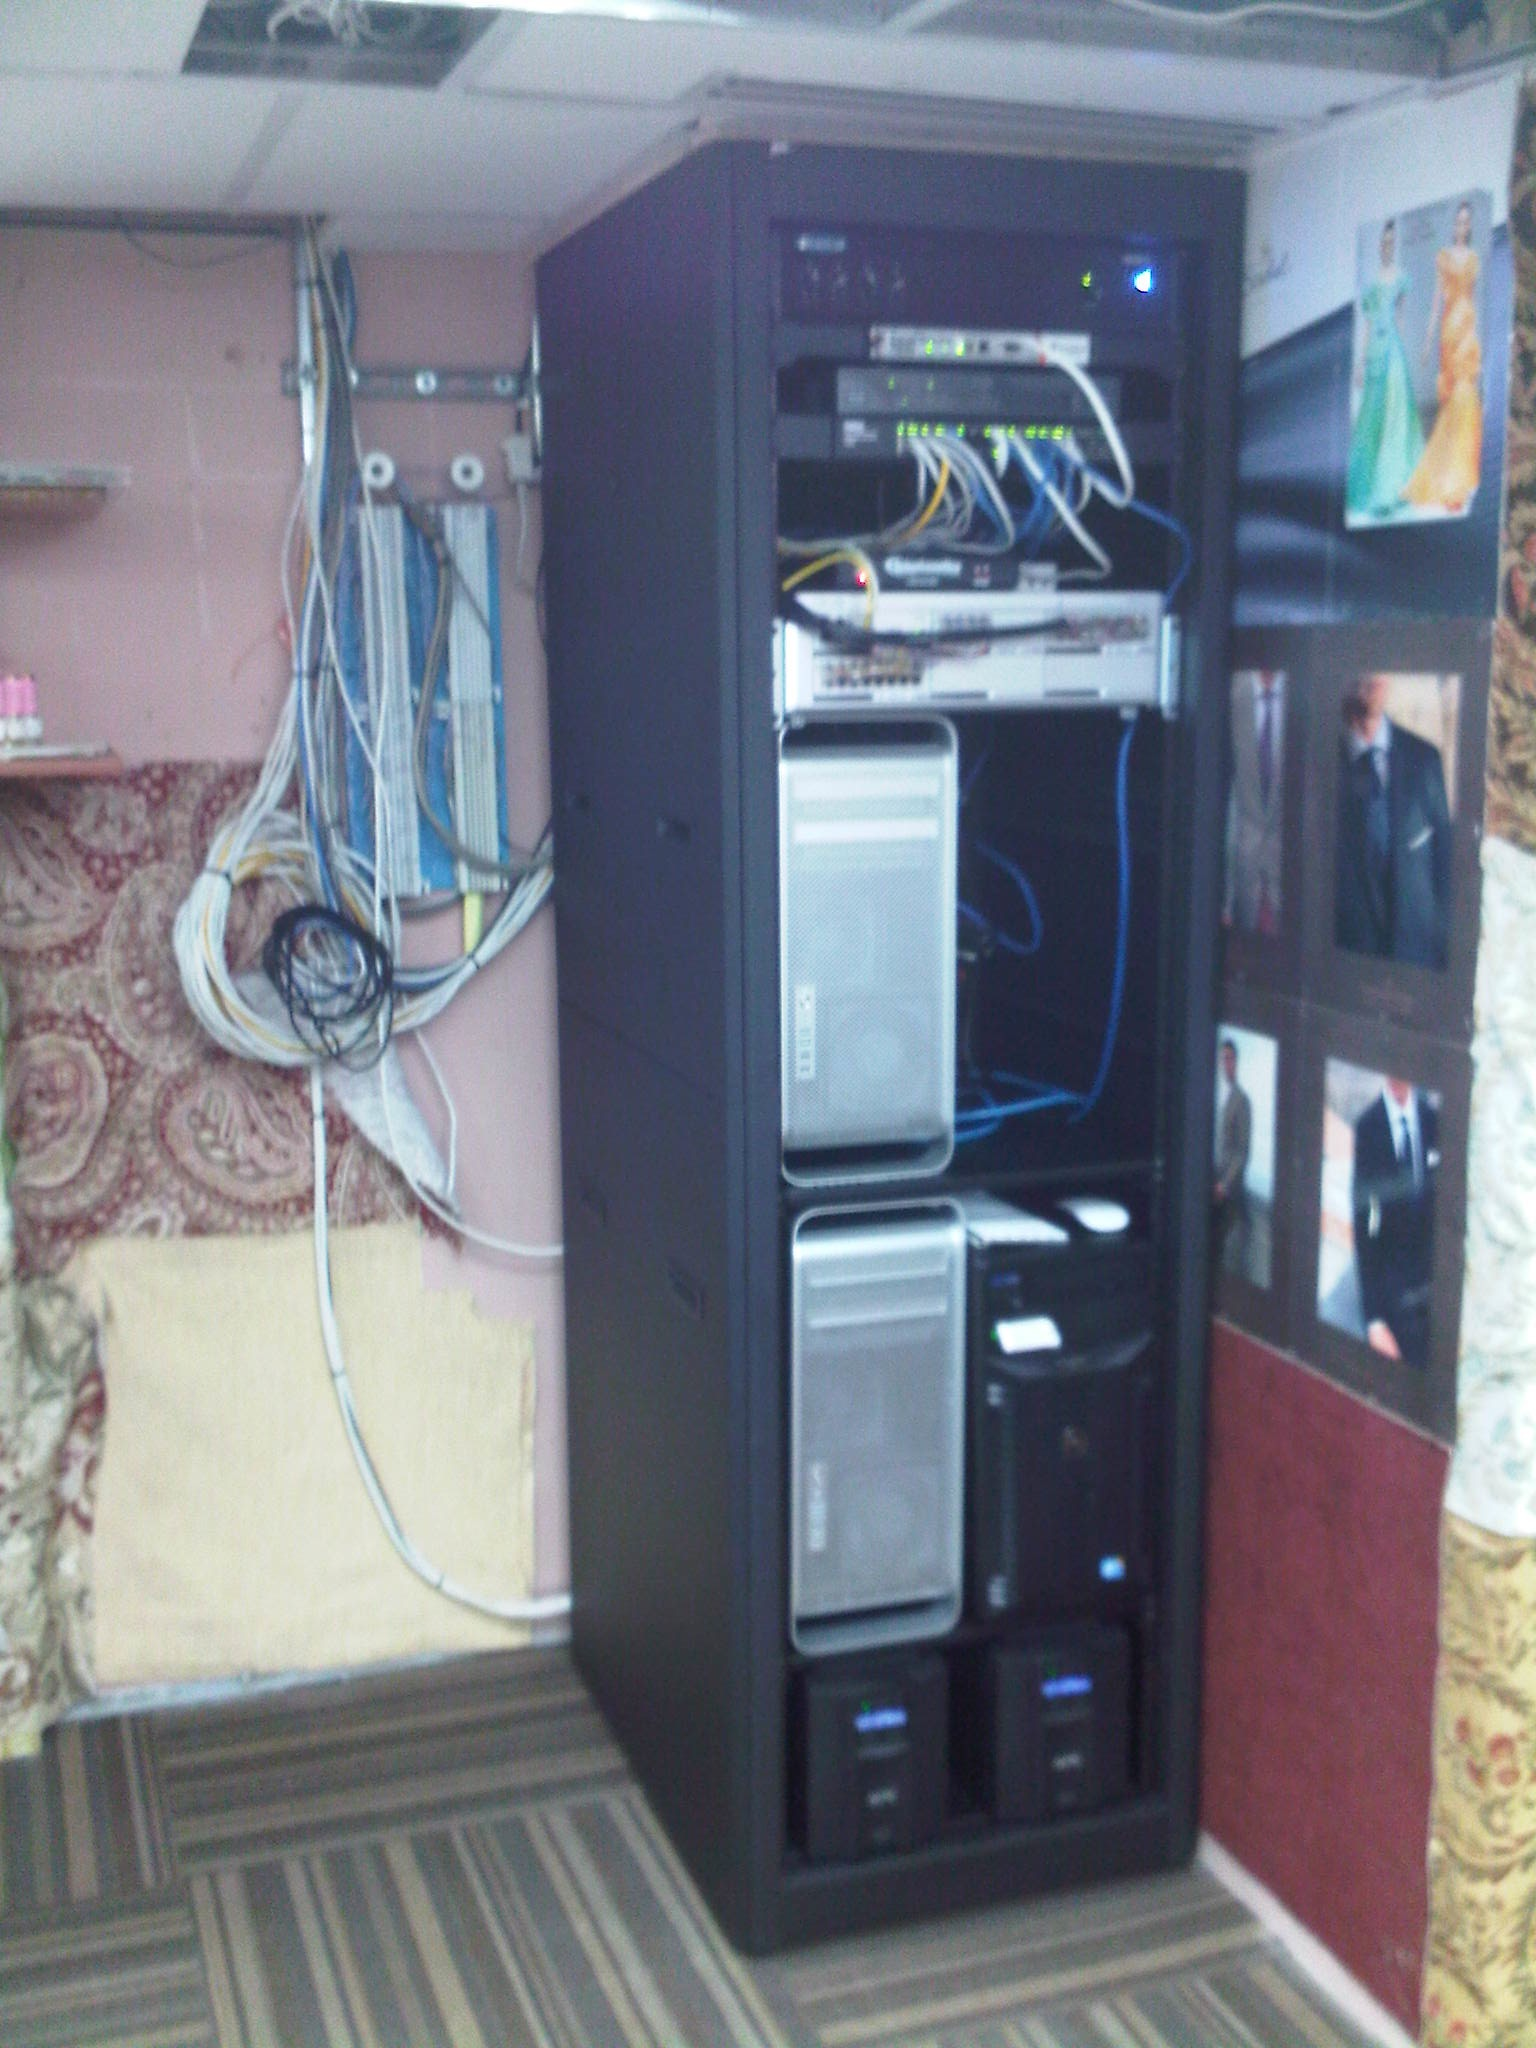 Commercial Audio Visual & Control Equipment Rack installation by dmg Martinez Group in Miami